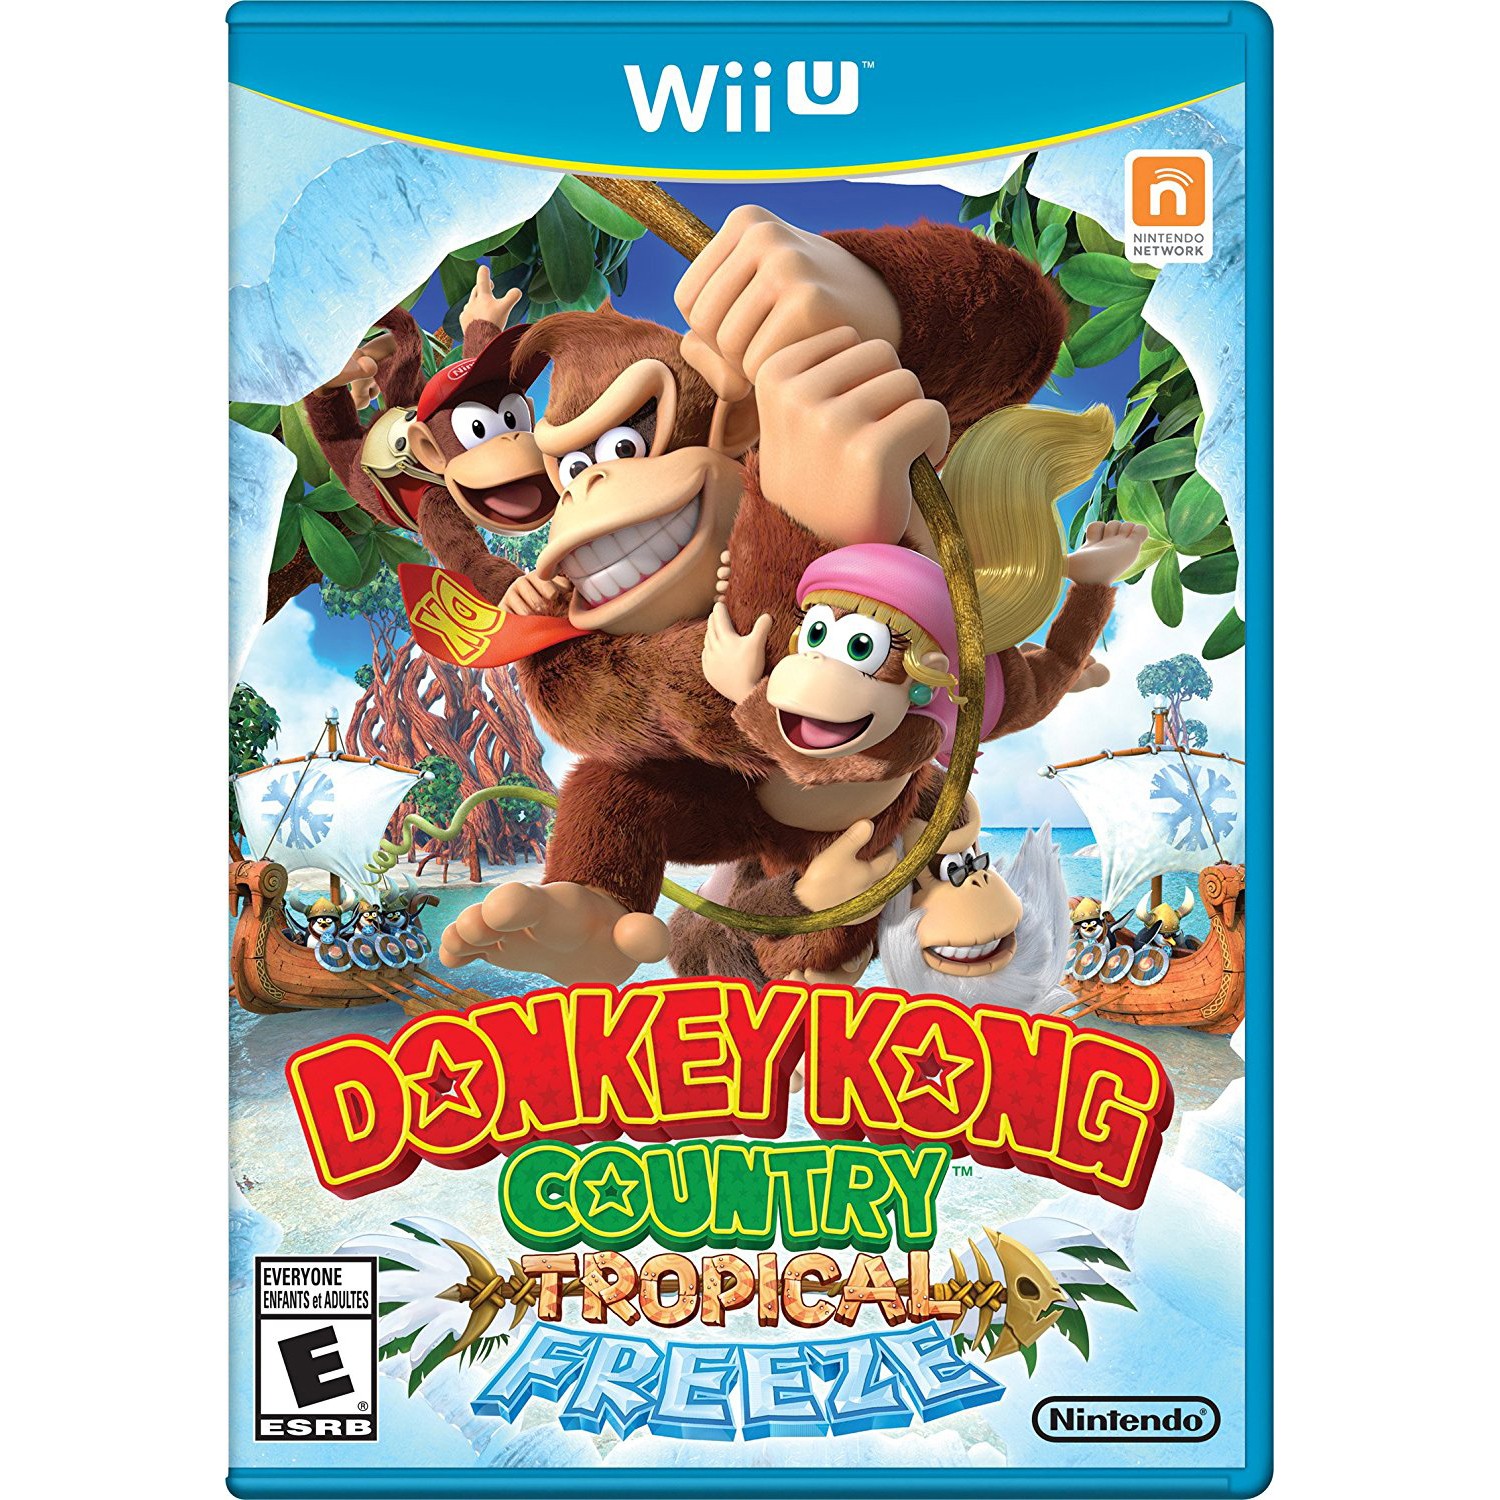 Donkey Kong Country: Tropical Freeze, Nintendo, WIIU, [Digital Download], 0004549666011